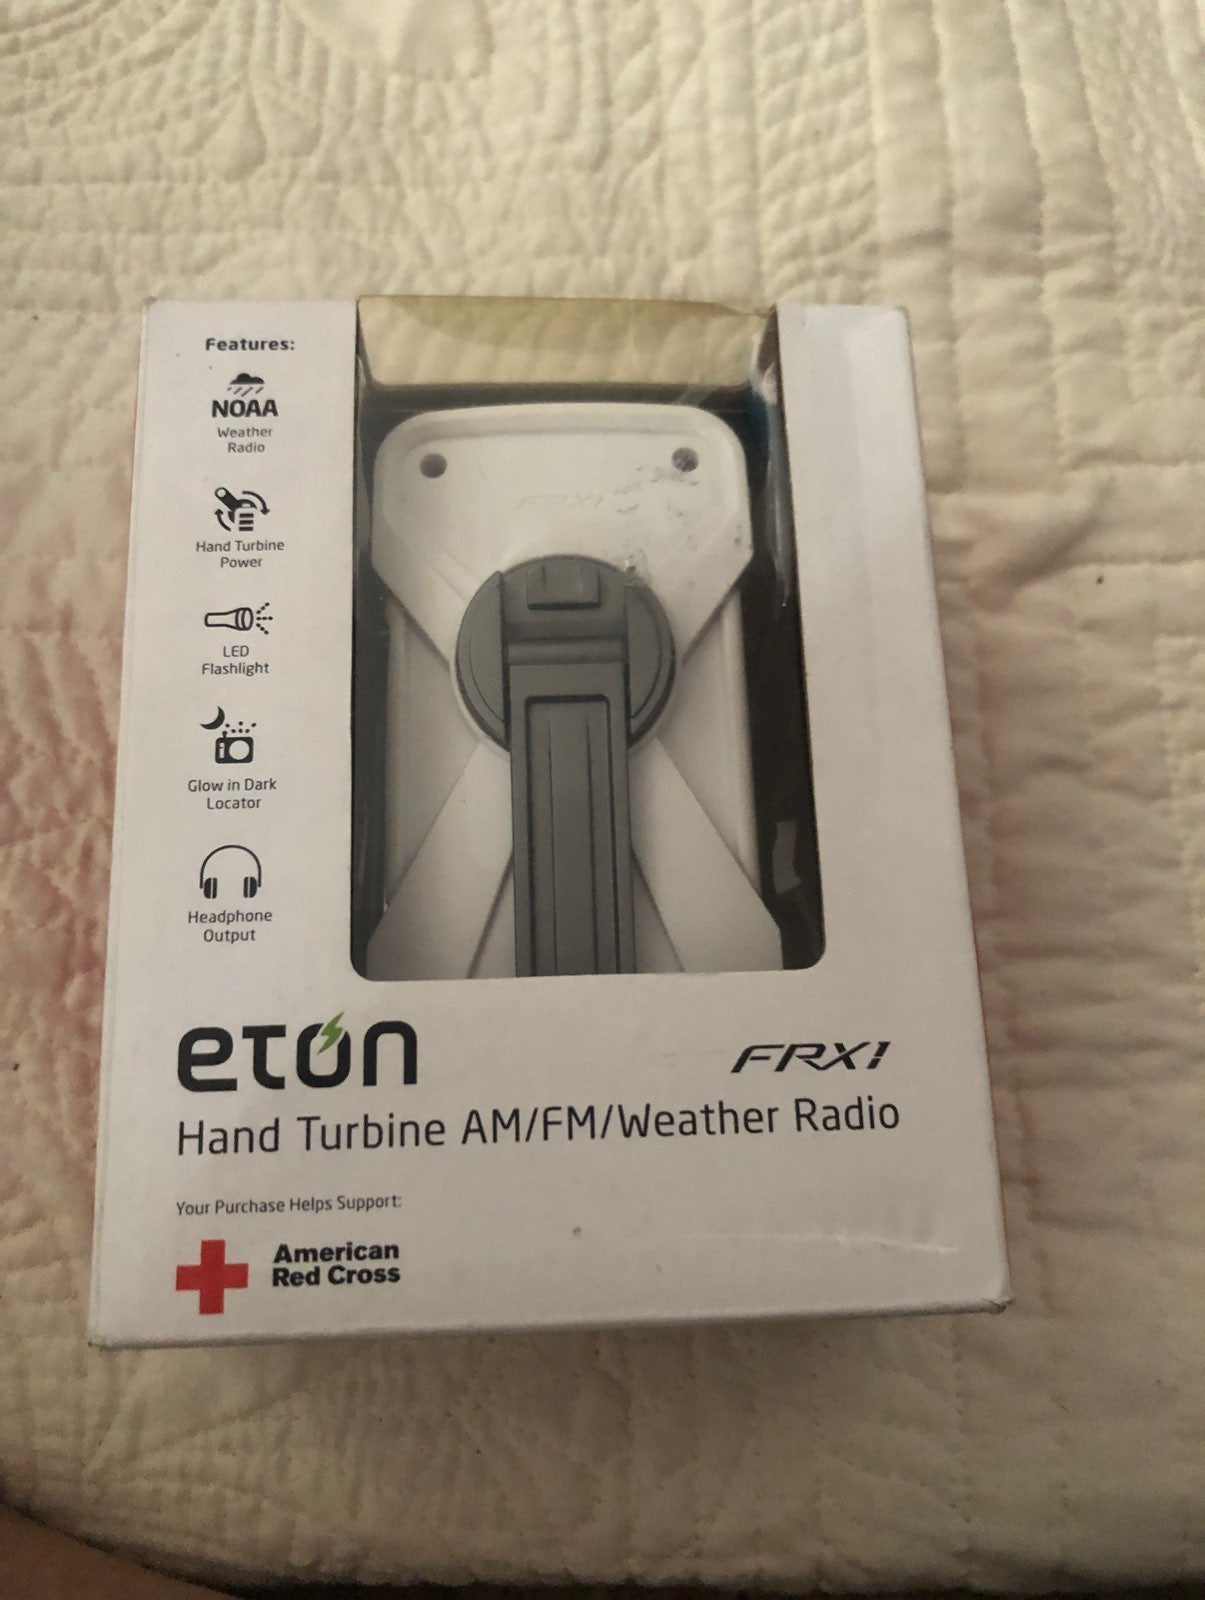 Brand new Eton hand turbine AM/FM weathe